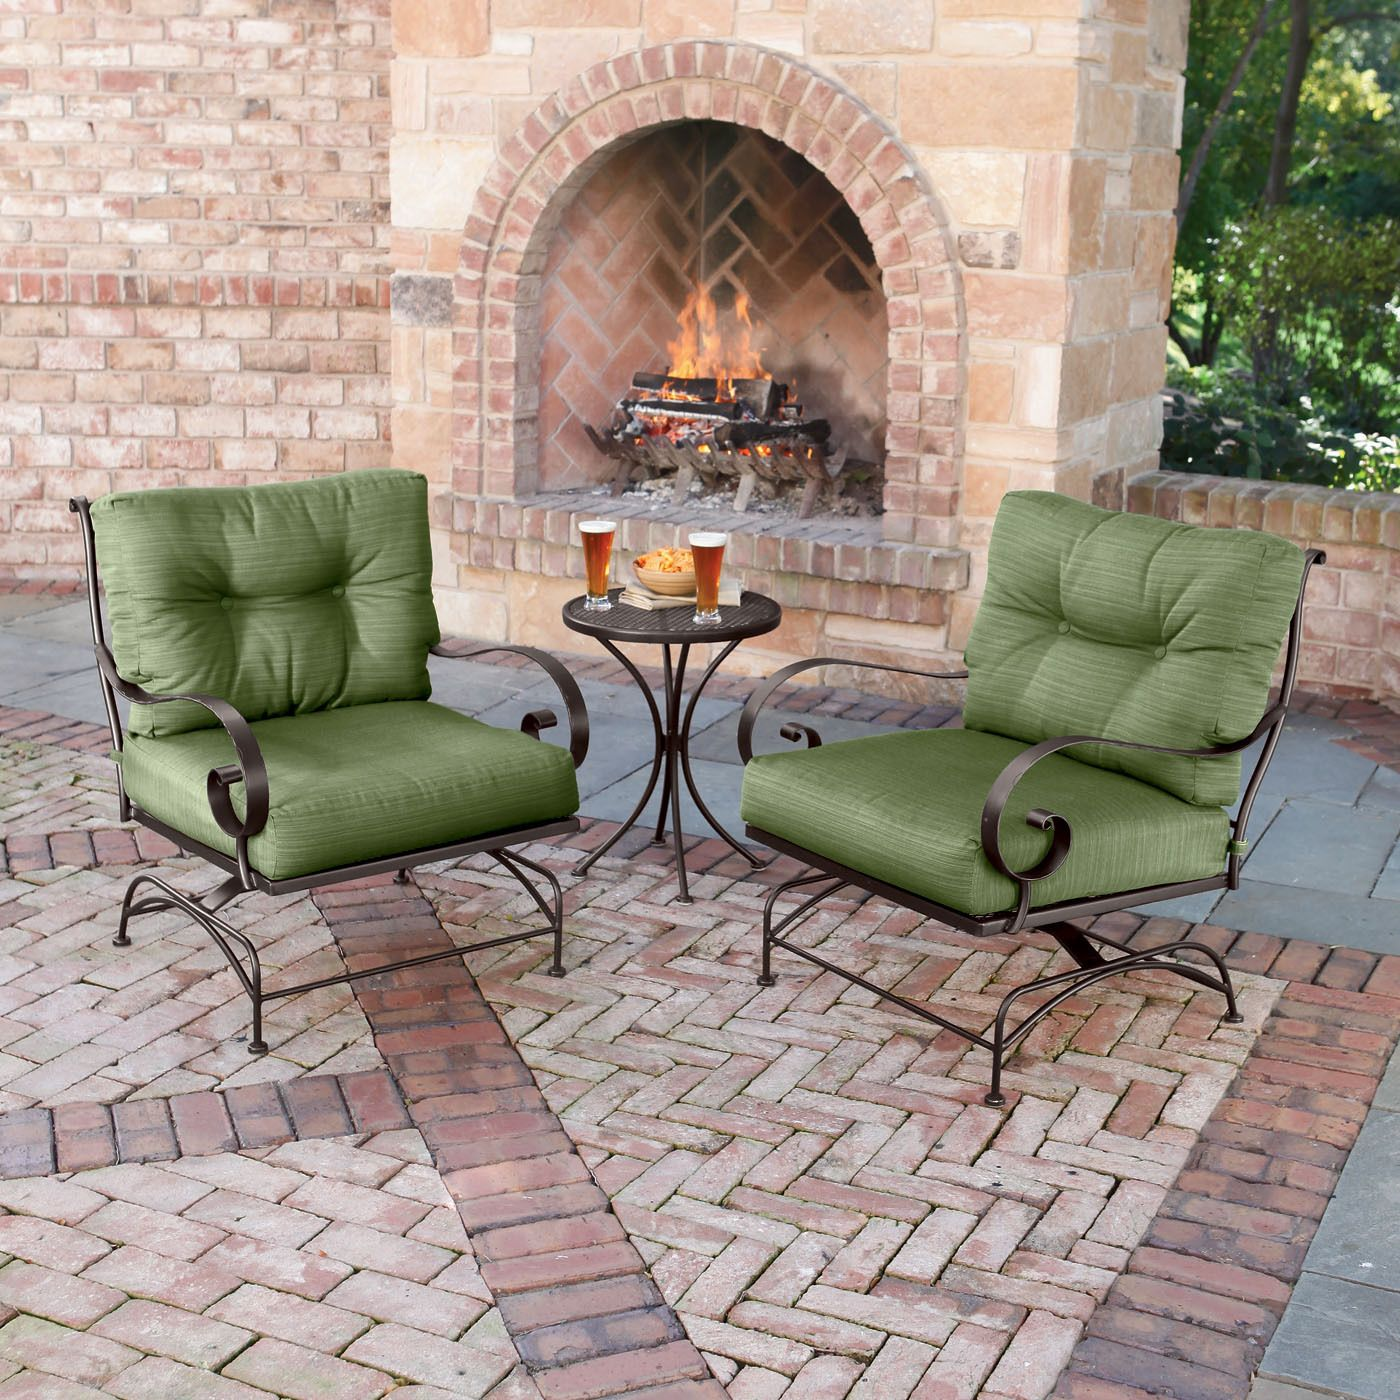 Patio Furniture Northcrest Del Rio 3 Piece Set Shopko Com Furniture Stylish Patio Furniture Patio